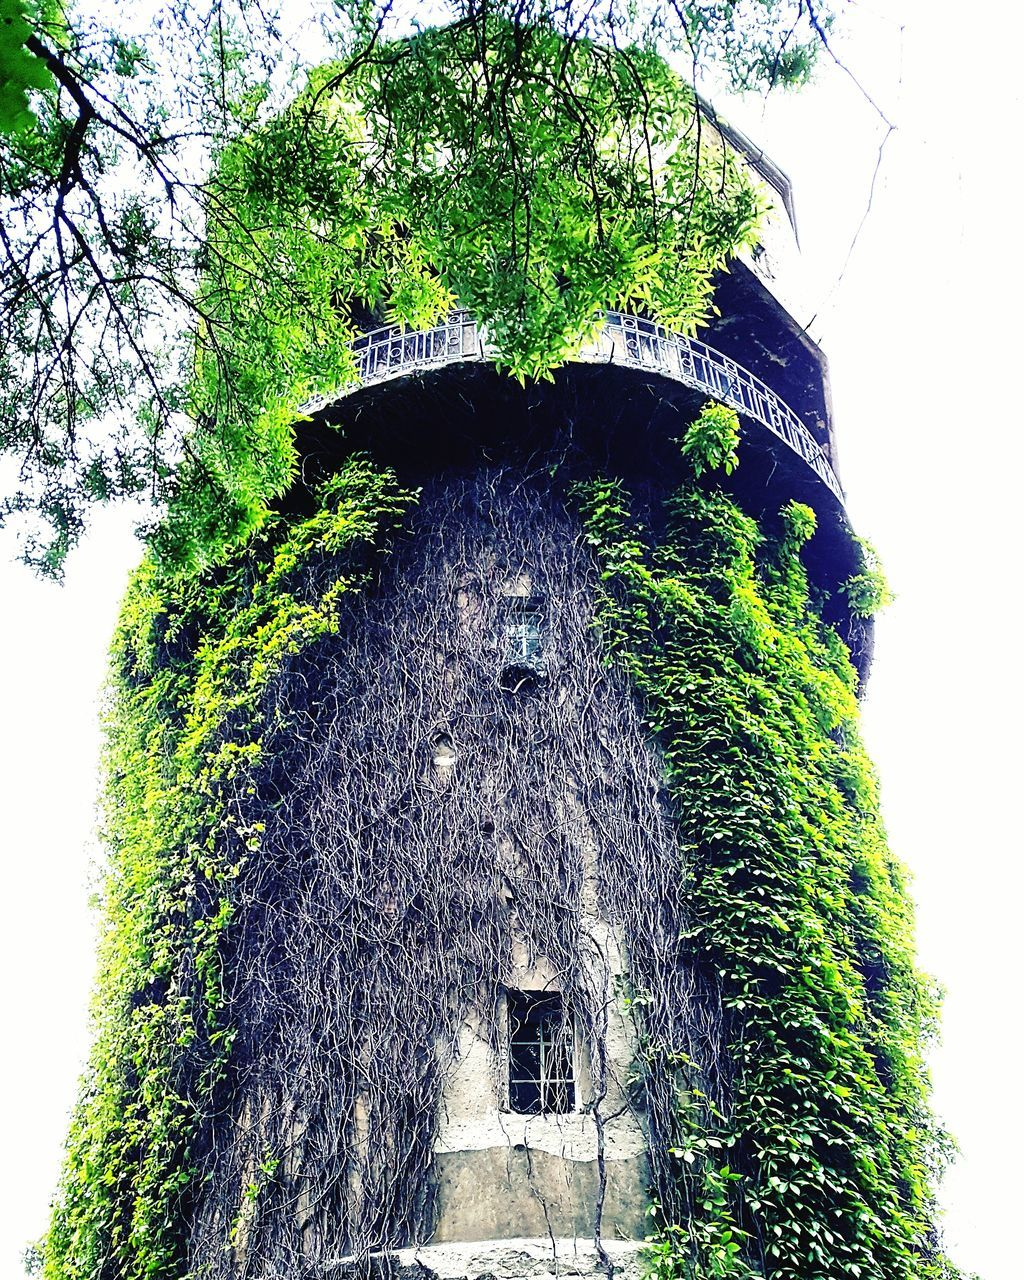 low angle view, tree, architecture, built structure, no people, day, outdoors, building exterior, growth, nature, green color, clear sky, ivy, tree trunk, sky, animal themes, beauty in nature, close-up